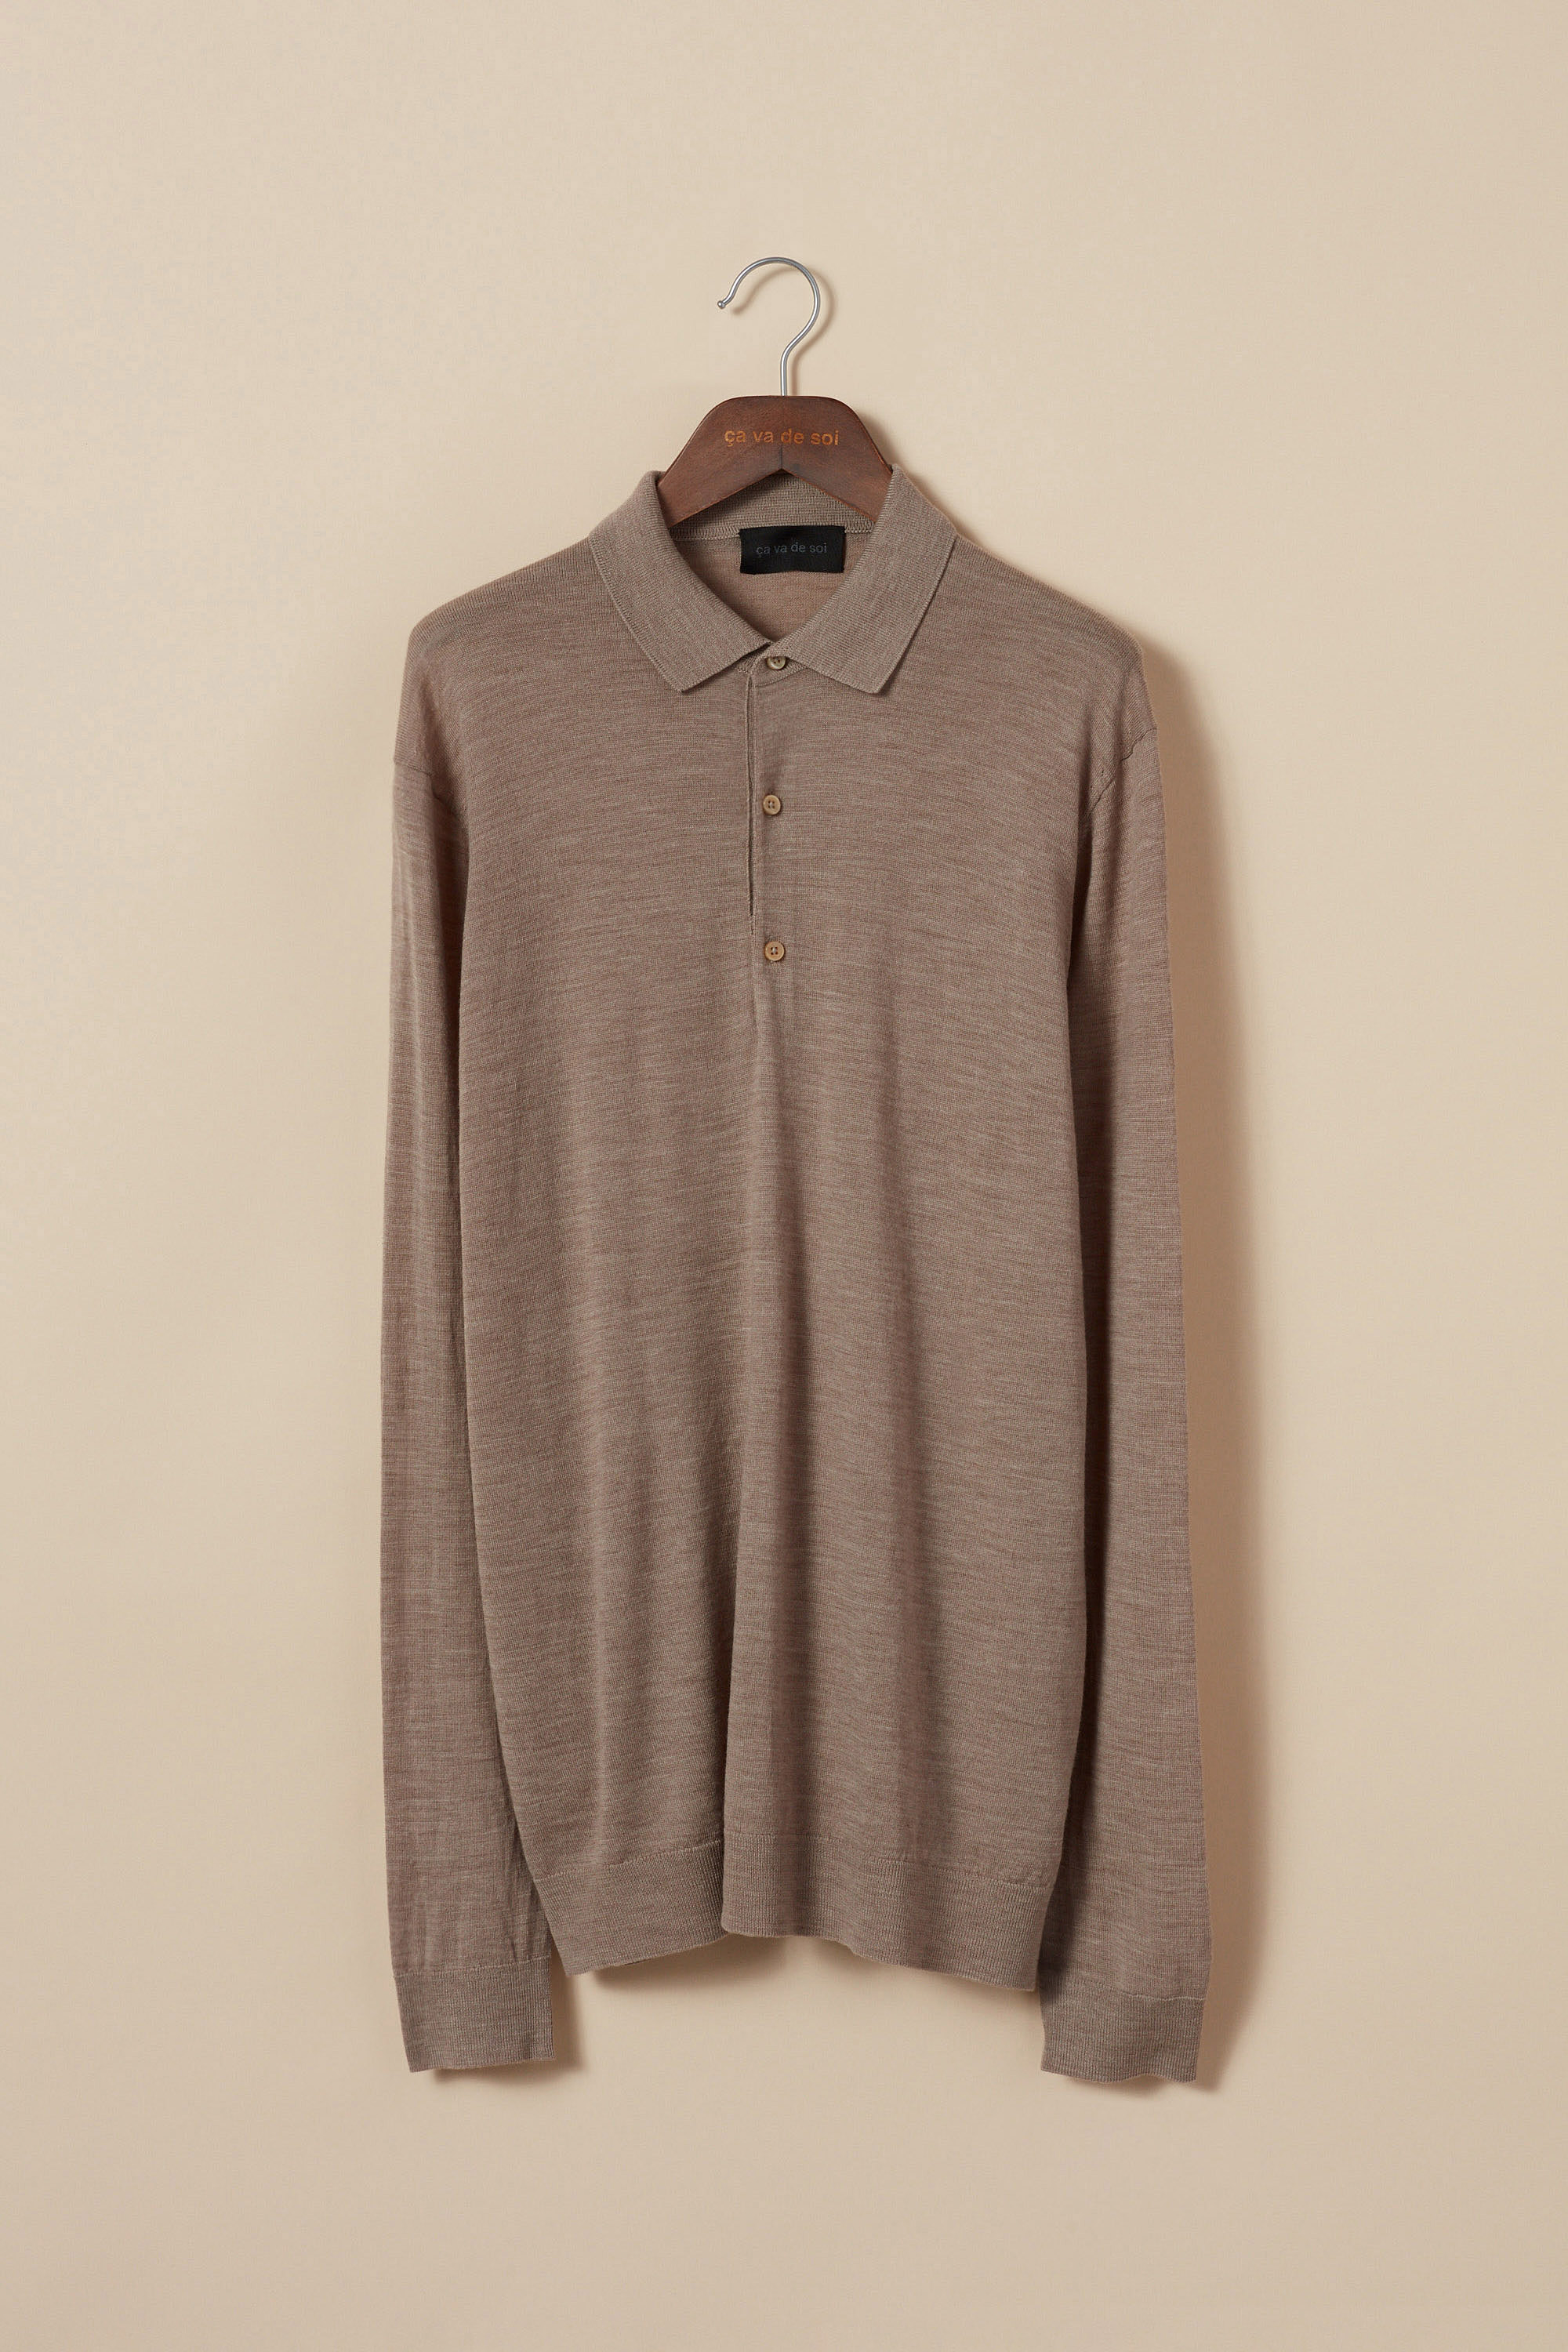 Extra-fine merino wool polo sweater